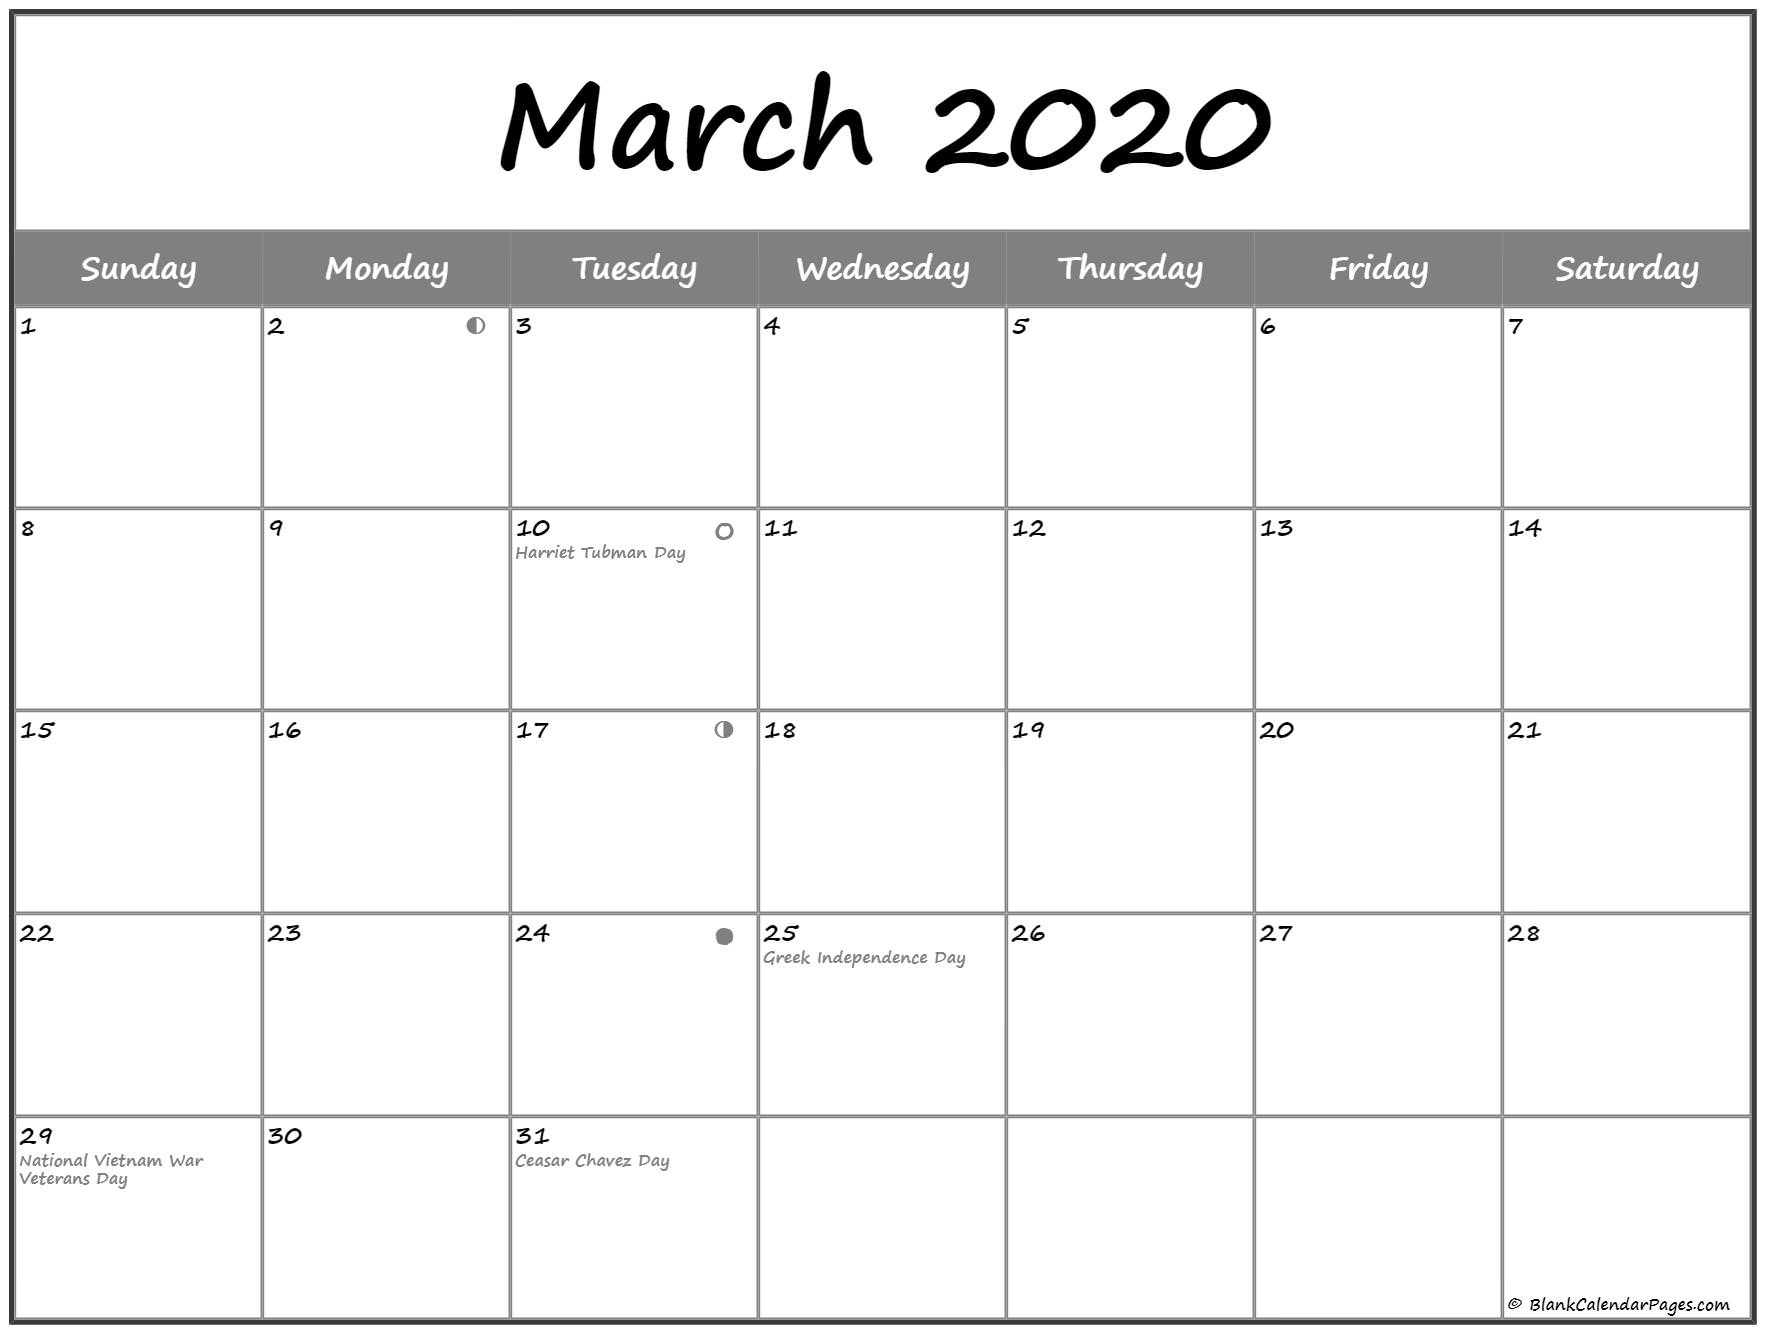 March 2020 Lunar Calendar with Moon phases